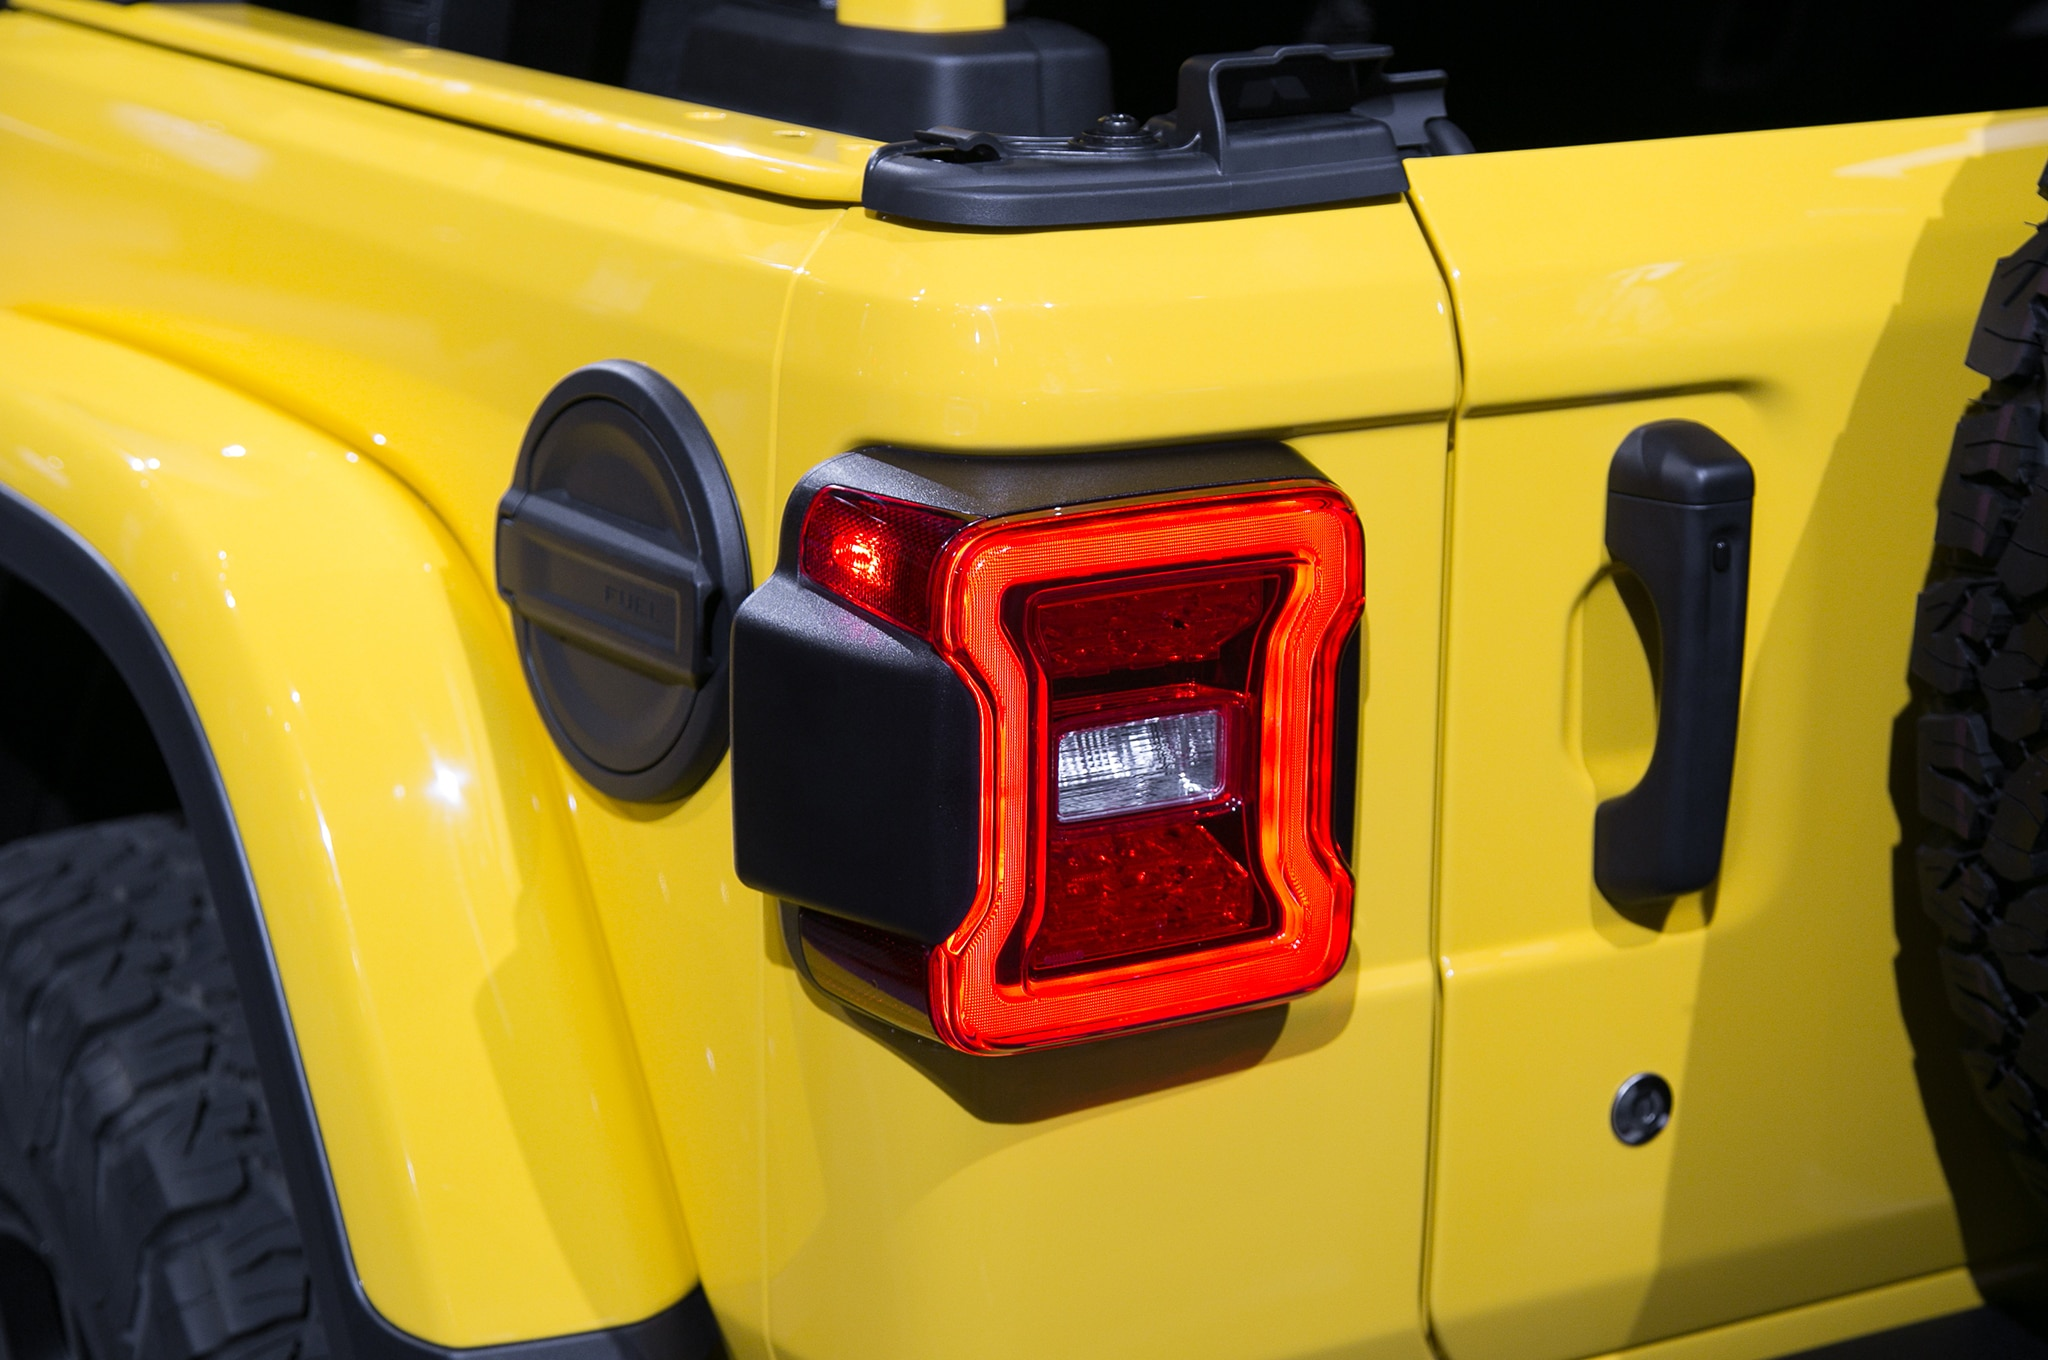 Ten Things You Need To Know About The Jl 2018 Jeep Wrangler Dash Warning Lights Show More